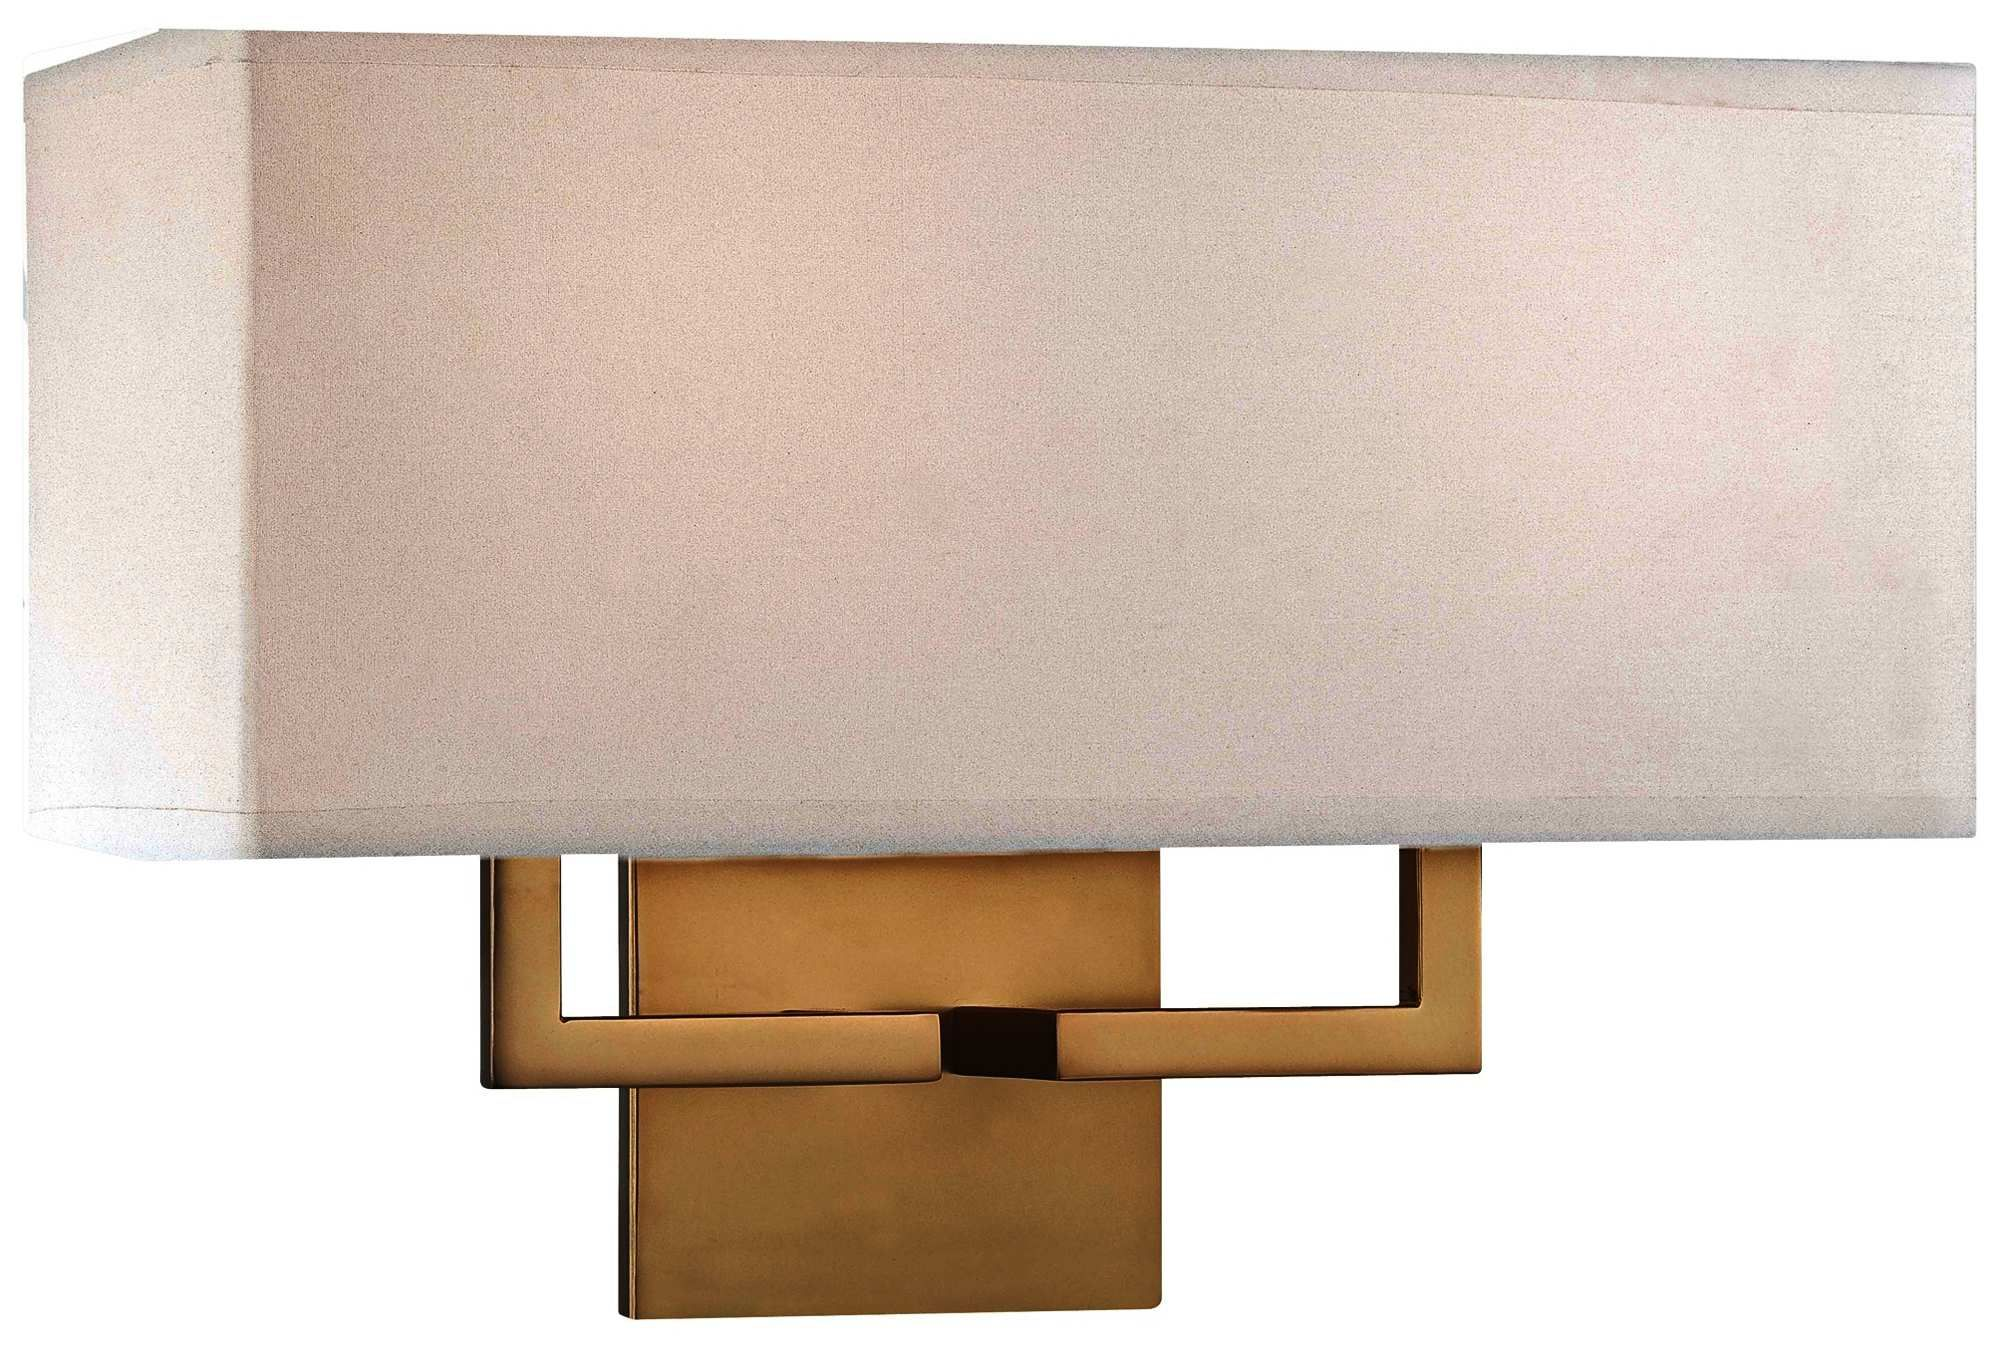 George Kovacs Rectangle 11 Gold Wall Sconce Bronze Wall Sconce Wall Sconces